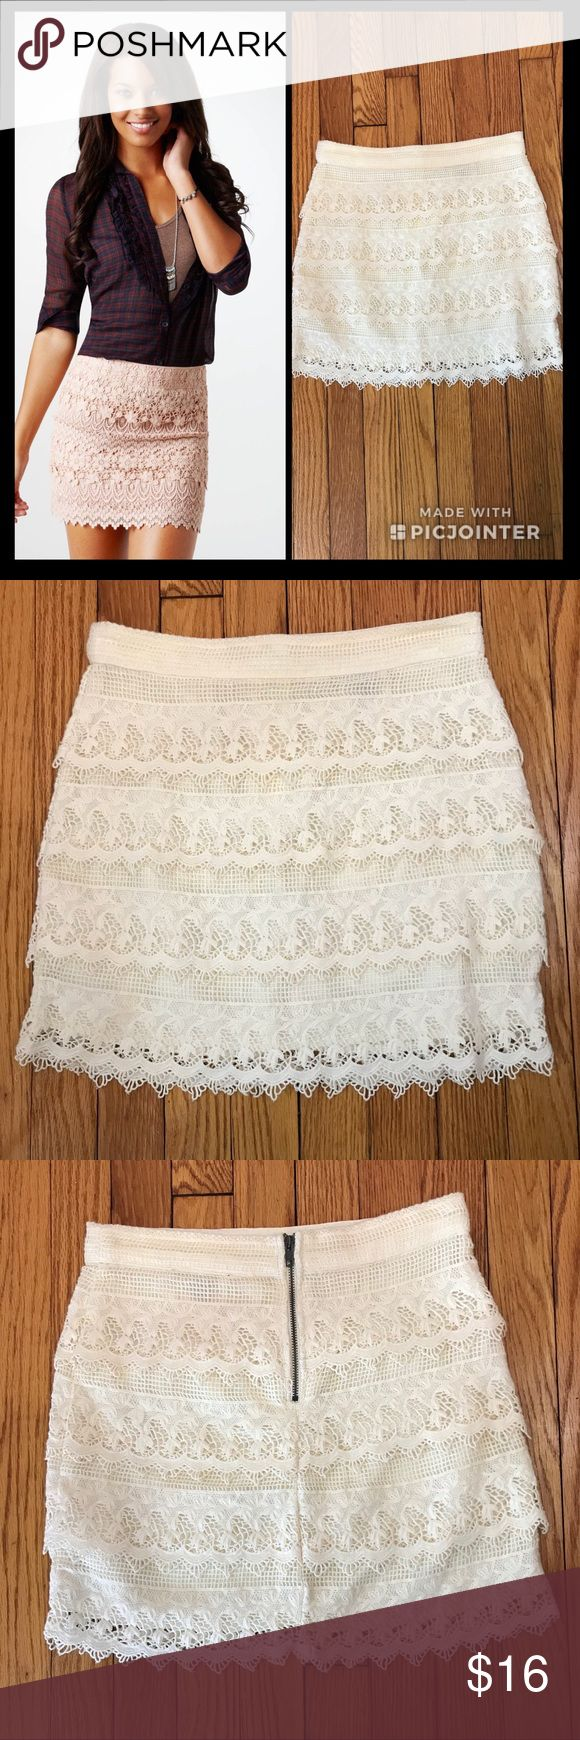 """American Eagle Lace Tiered Mini Skirt (Size 2) Gorgeous American Eagle lace tiered crochet skirt. Soft cotton lace, Crocheted lace tiers, Grosgrain ribbon waistband, Full satin lining, Back zip,  length is 15"""" from center back. , size 2 in off-white. Made from shell/cotton/lining/polyester. Cannot see through it because of the lining. American Eagle Outfitters Skirts Mini"""